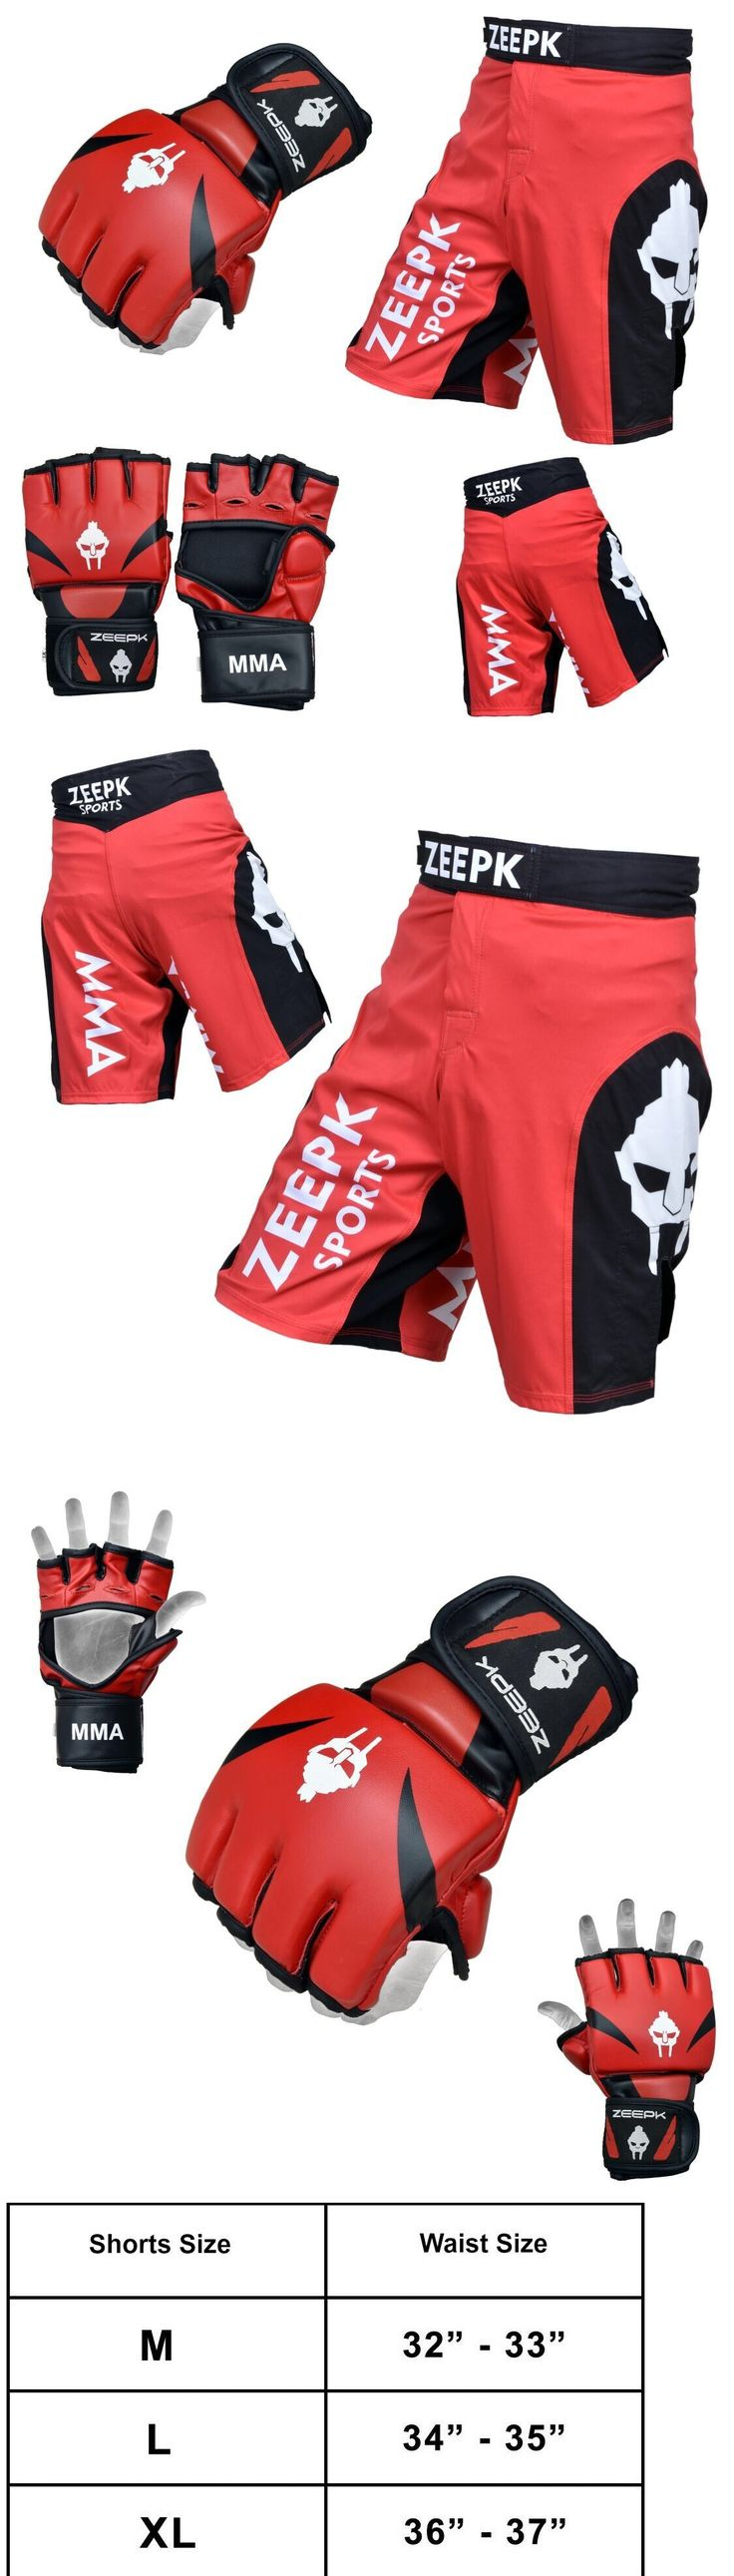 Shorts 73982: Mma Ufc Sparring Grappling Boxing Fighting Shorts And Gloves Set Red/Black Color -> BUY IT NOW ONLY: $49.99 on eBay!